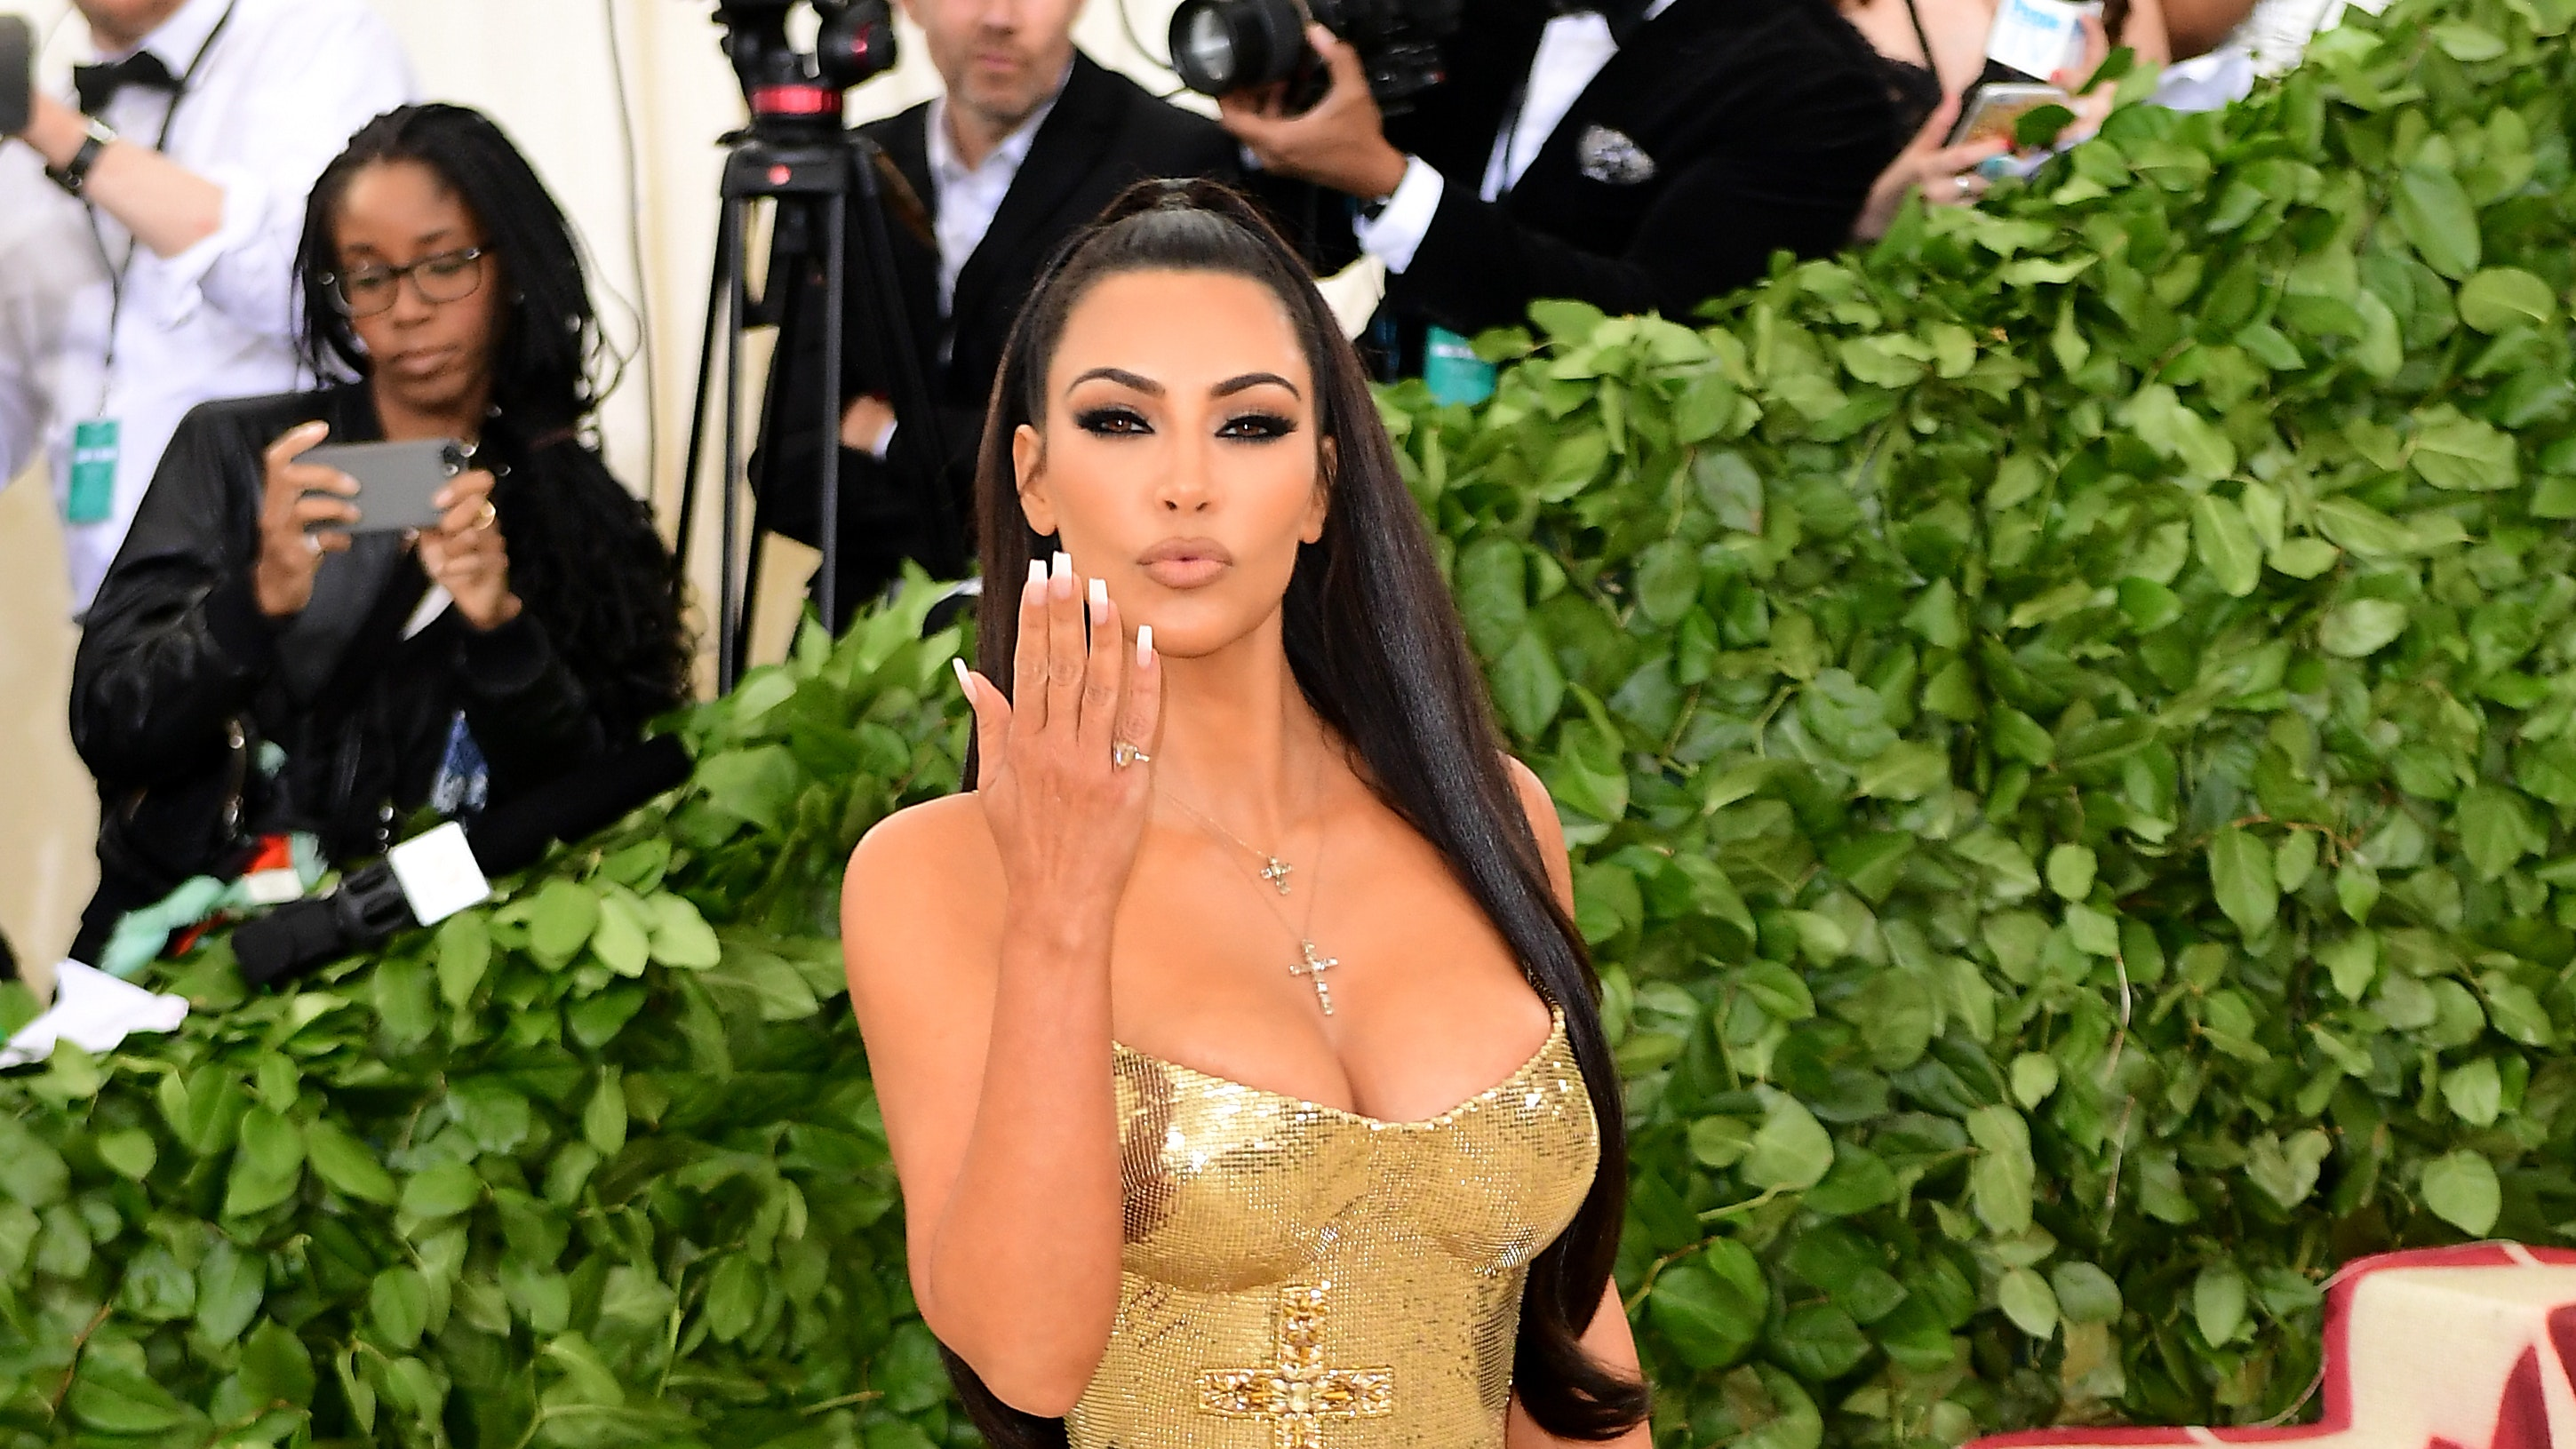 Kim Kardashian West claims she personally lobbied Twitter boss for edit button